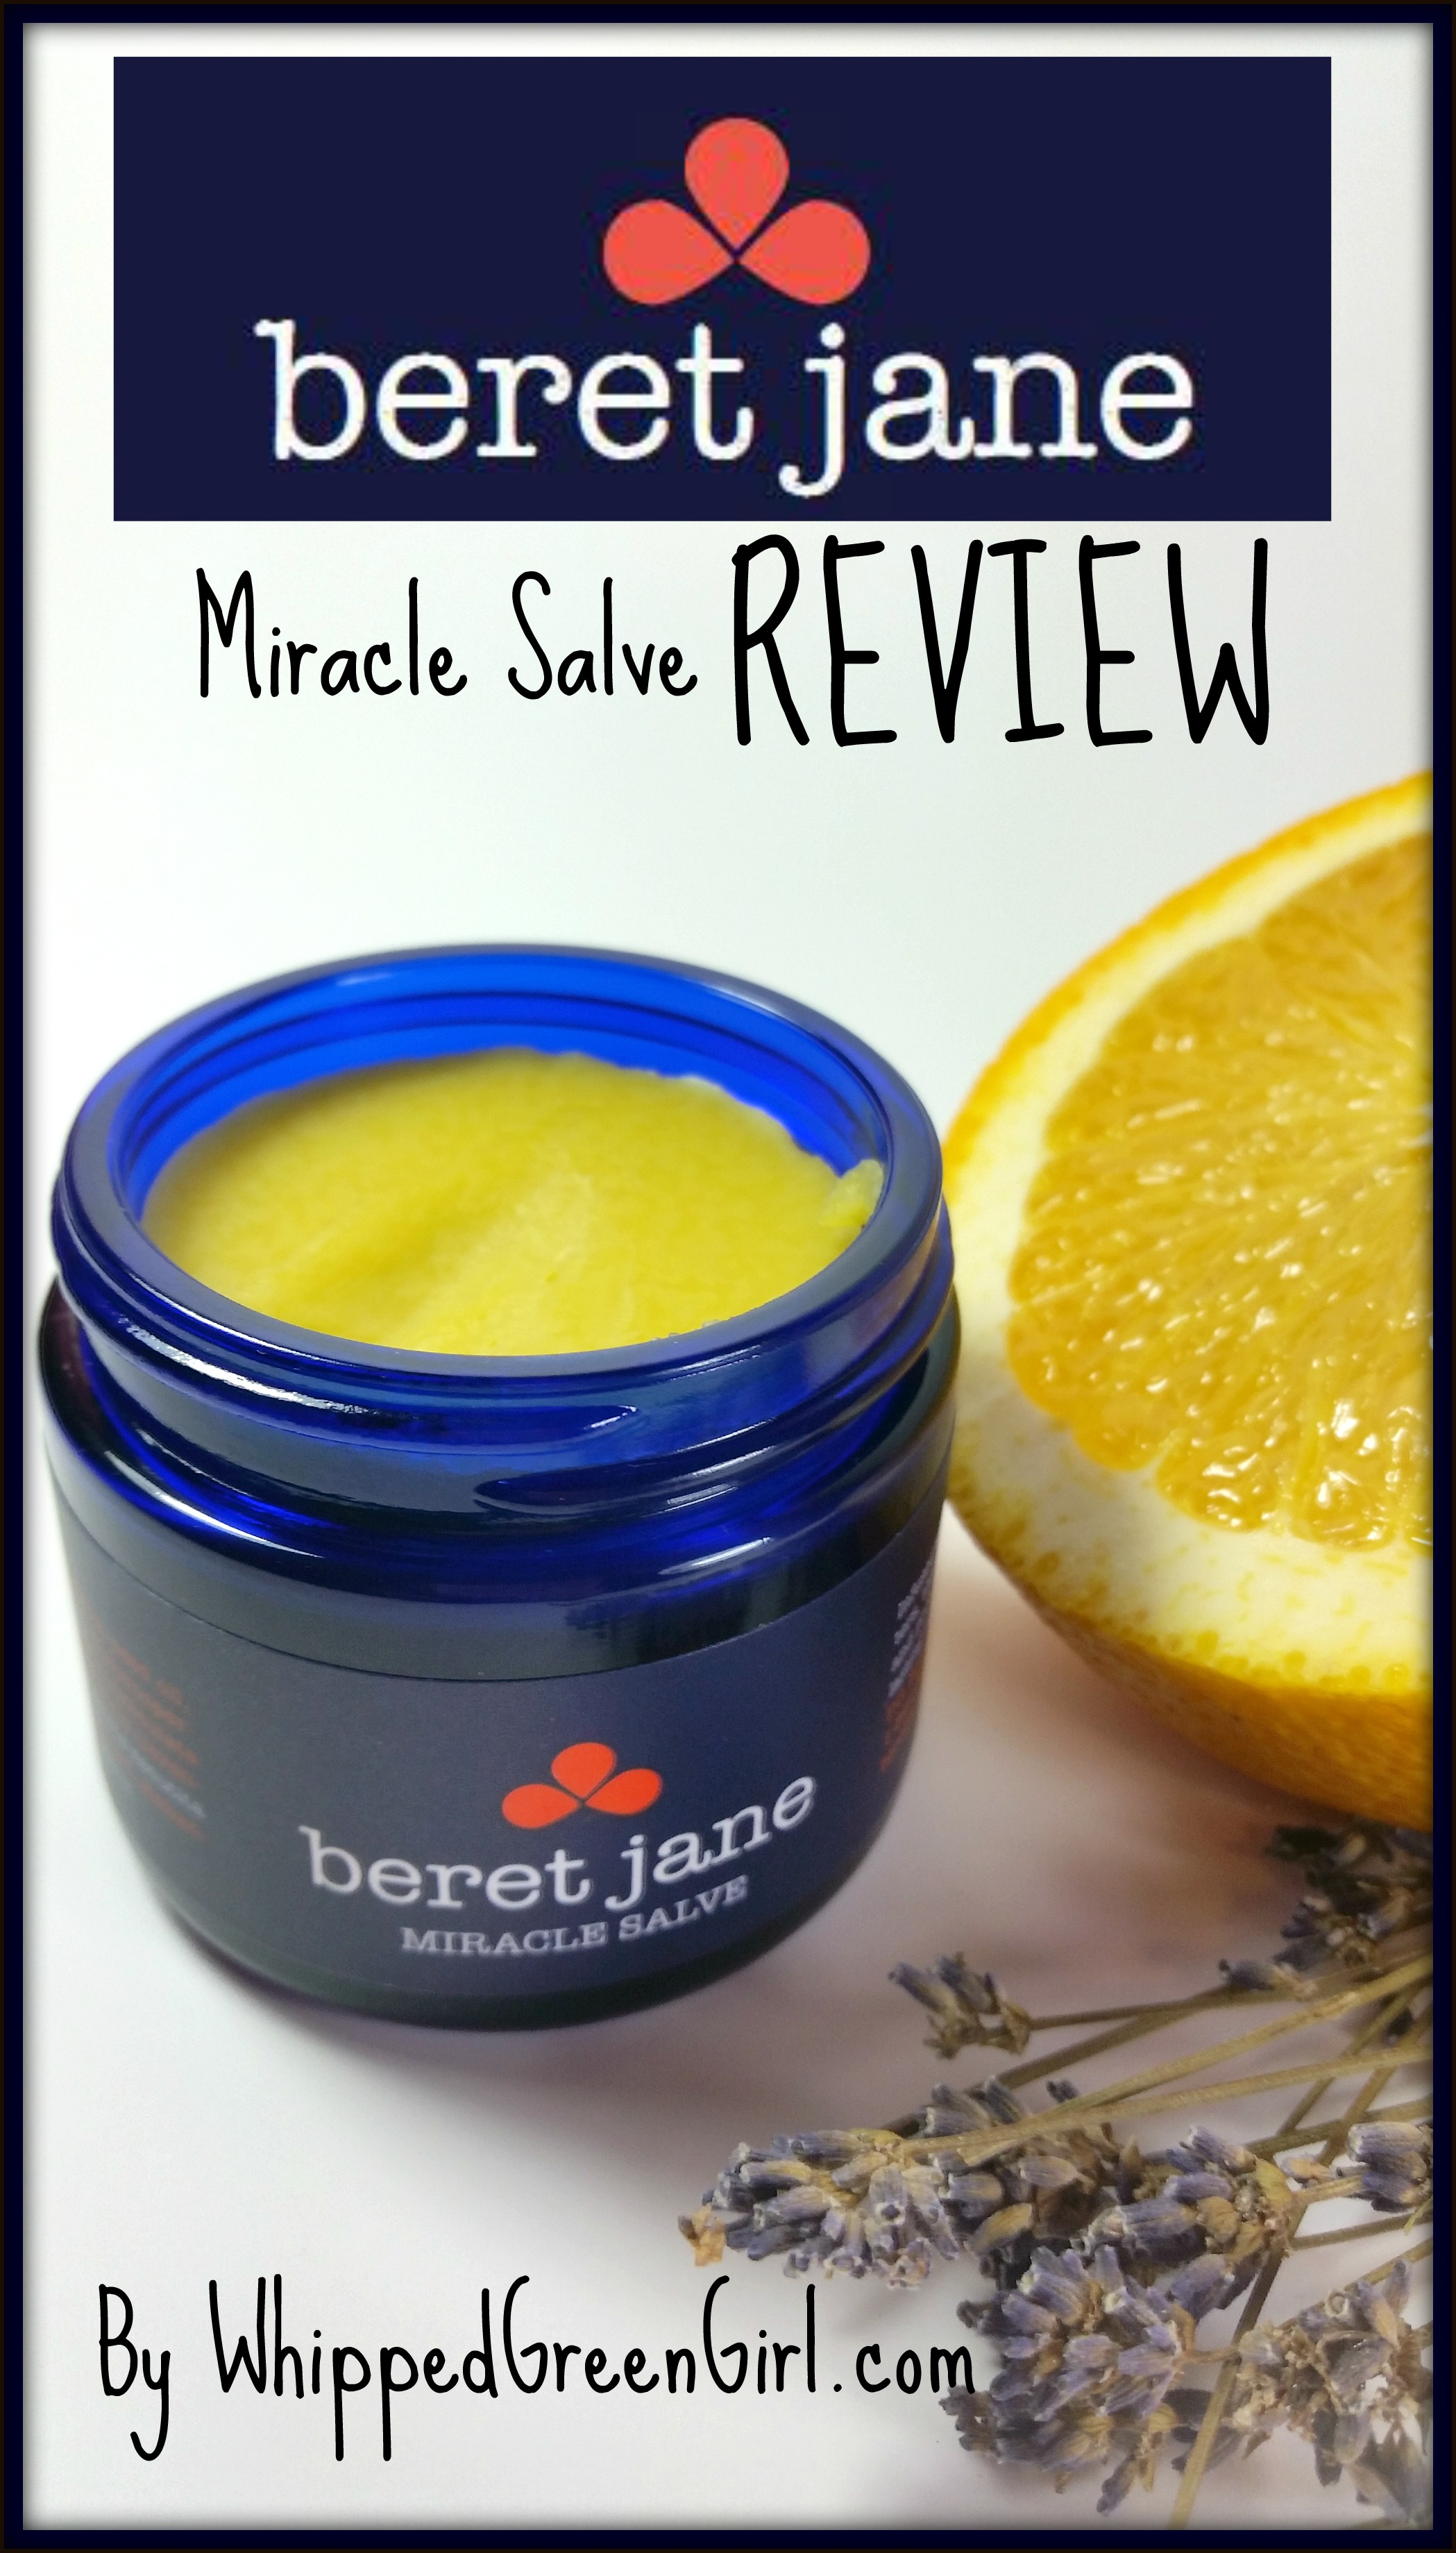 Beret Jane Miracle Salve #Review (By WhippedGreenGirl.com) #salve #organic #beretjane